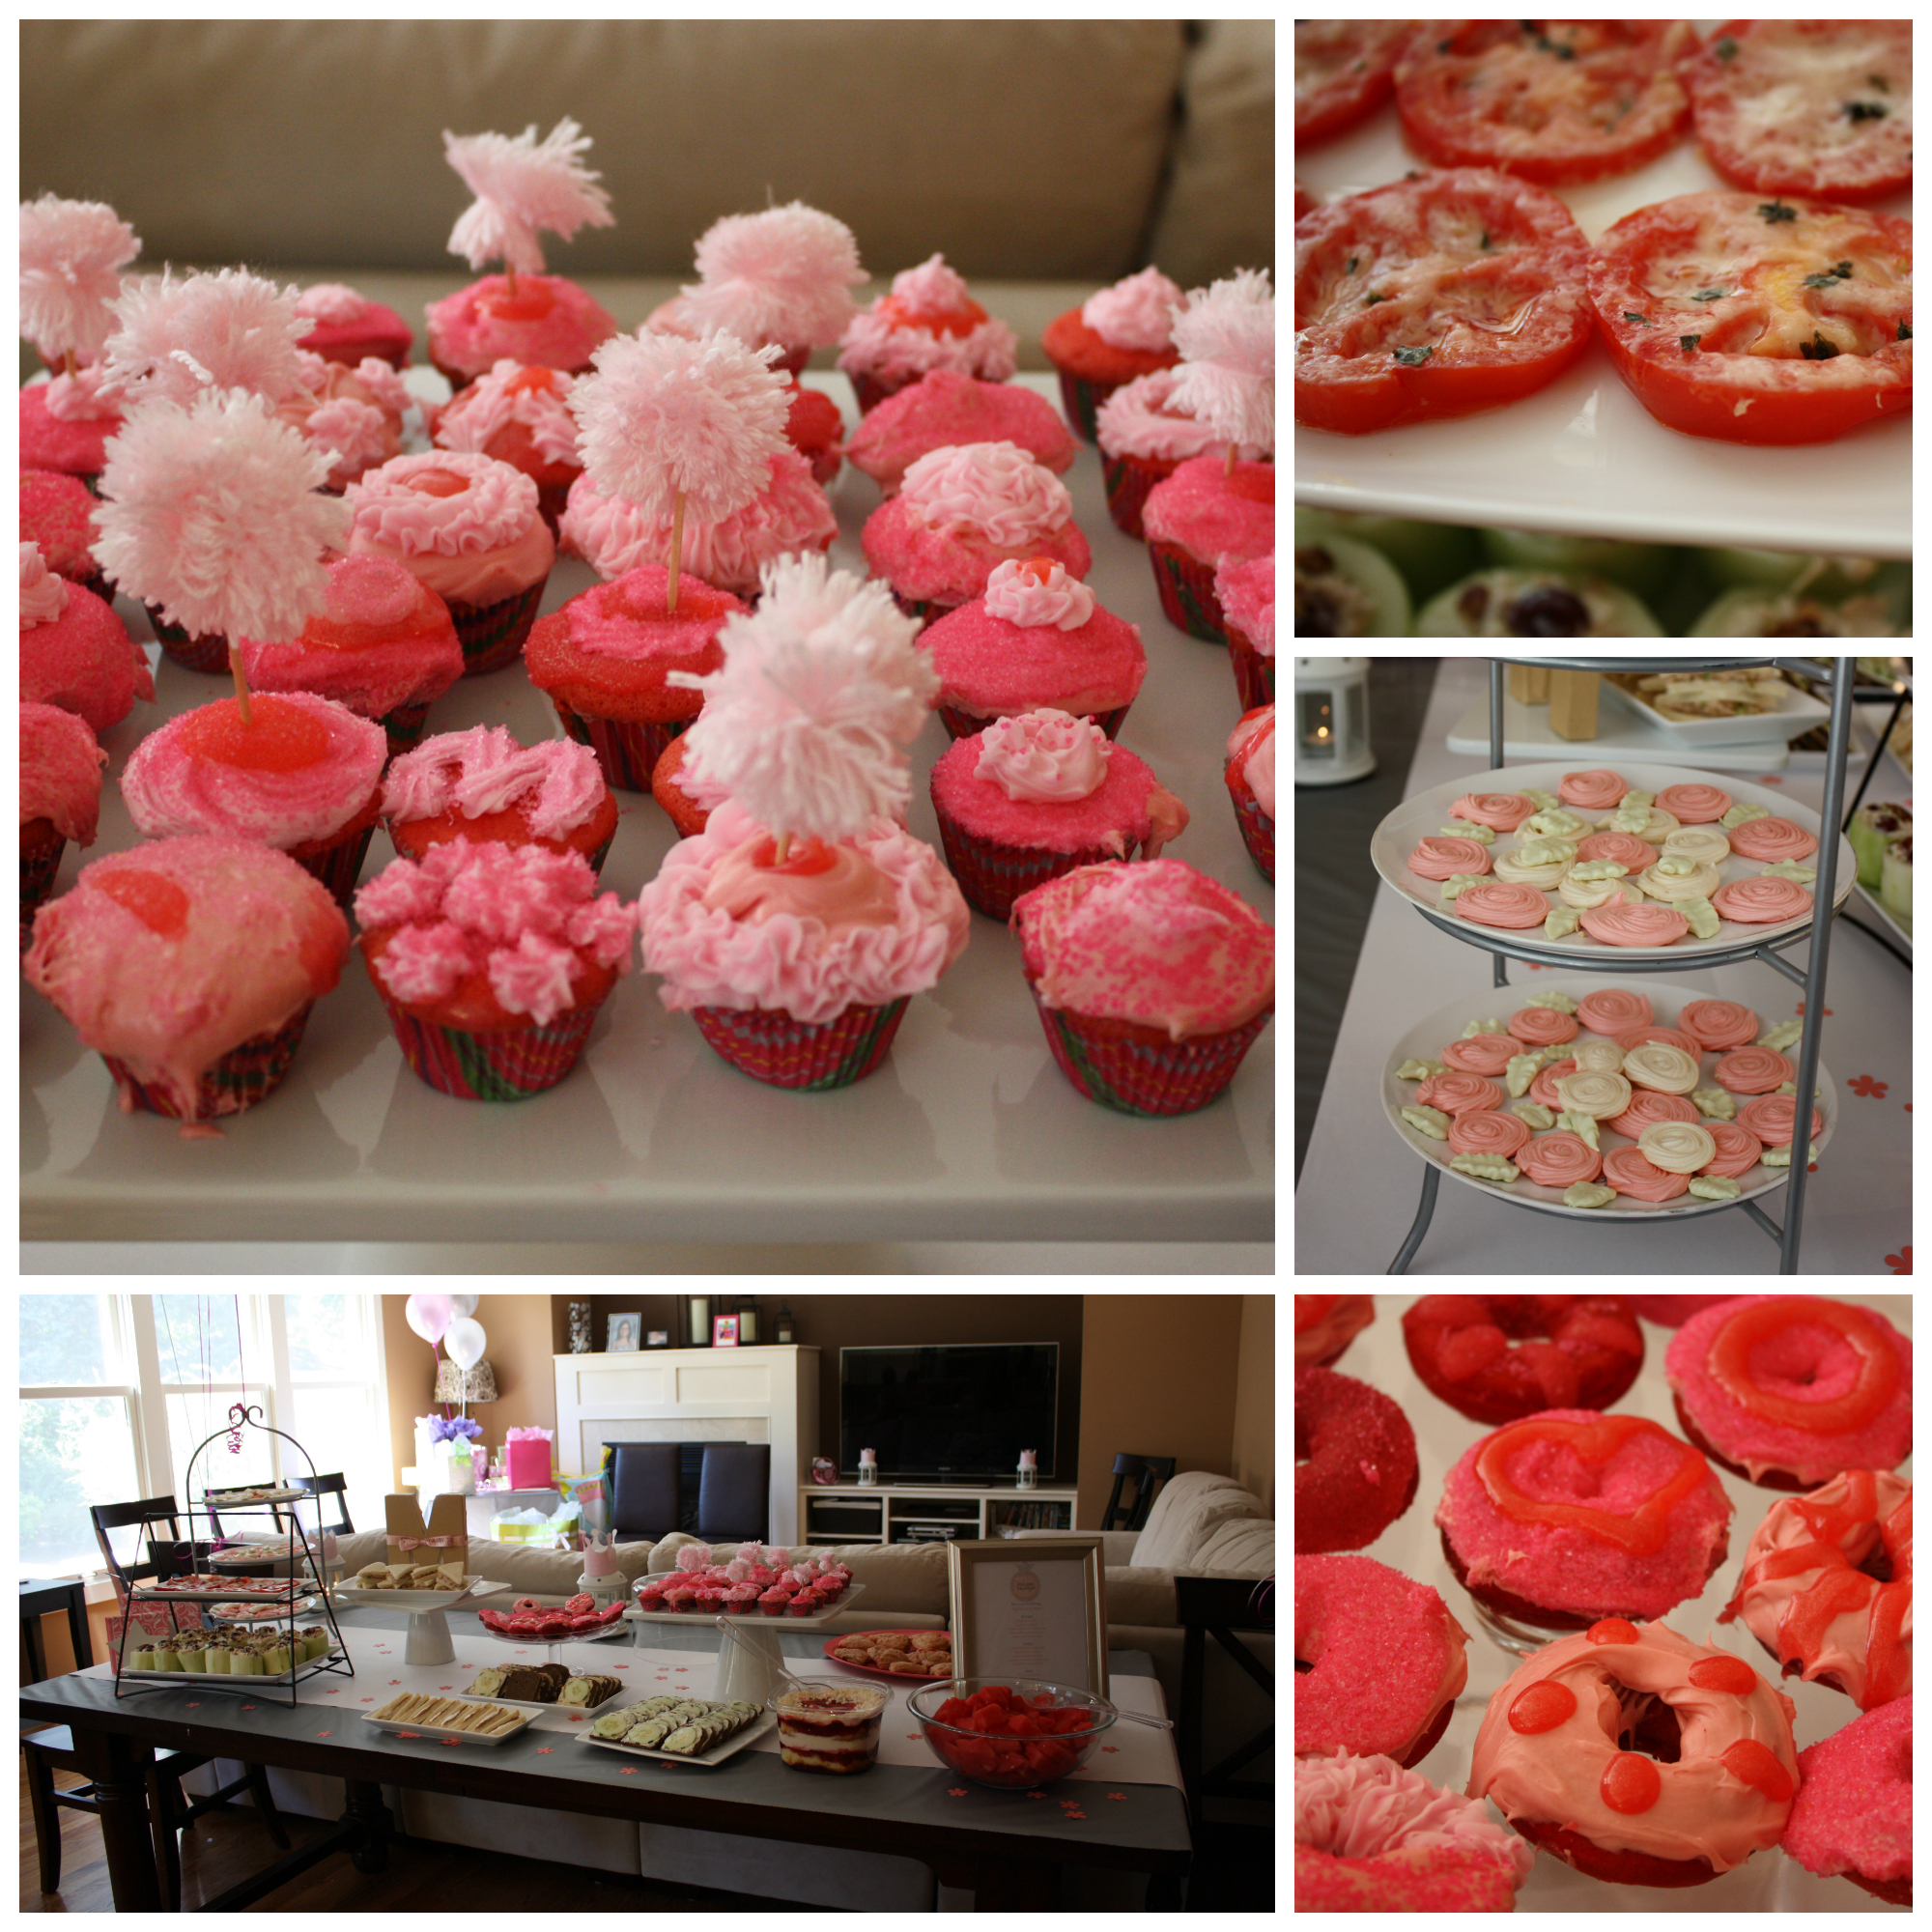 Baby Shower Girl Recipes ~ Food for baby shower girl recipes